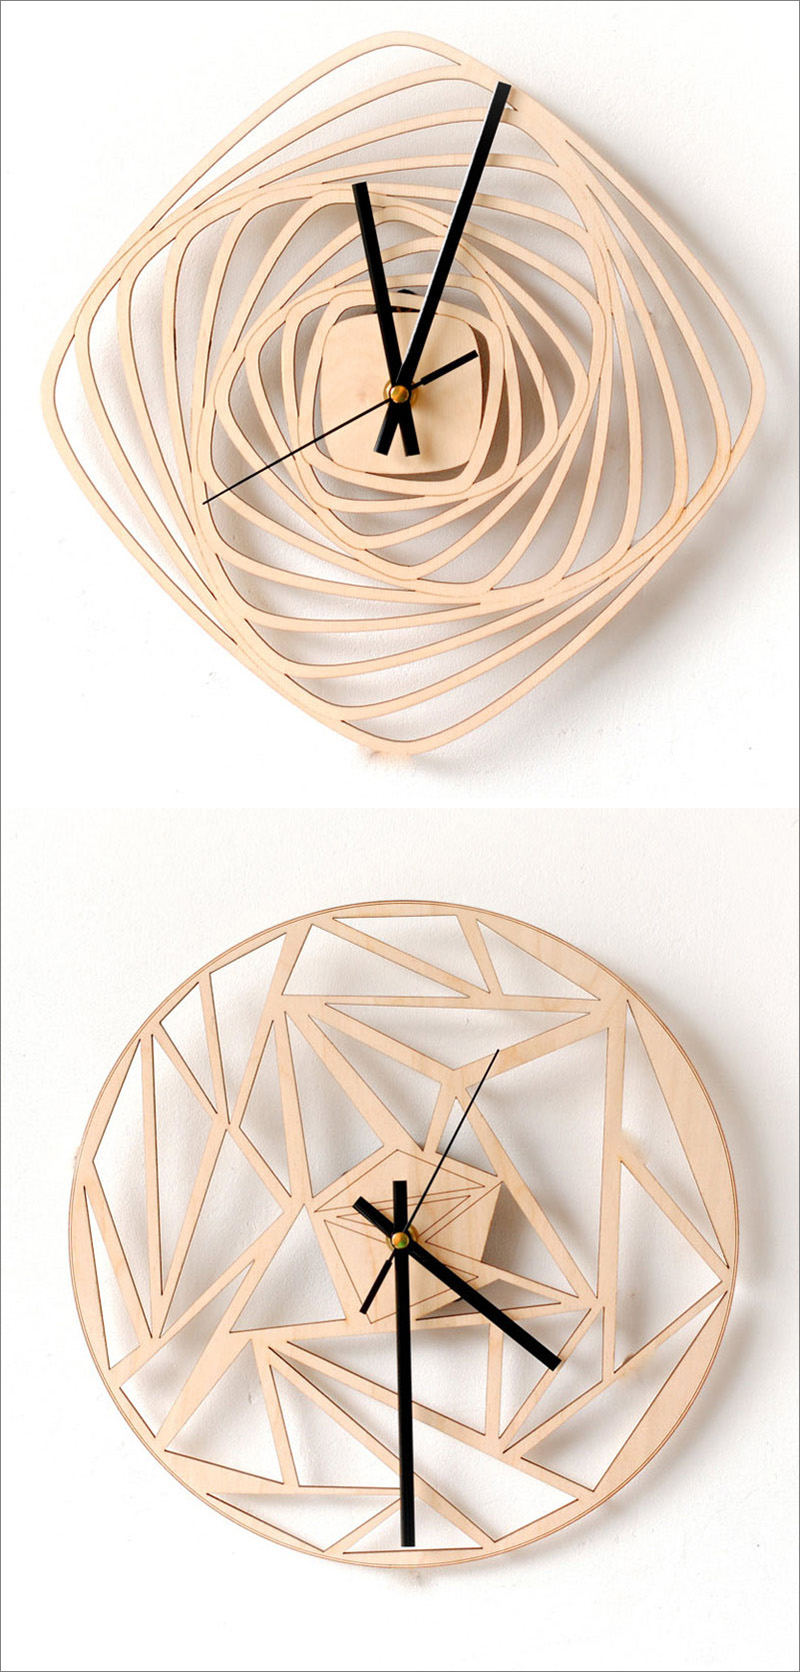 These intricately cut modern wood wall clocks feature a geometric look with clean lines and unique patterns that mix angles and smooth curves. #ModernWoodClock #WallClock #ModernDecor #ModernClock